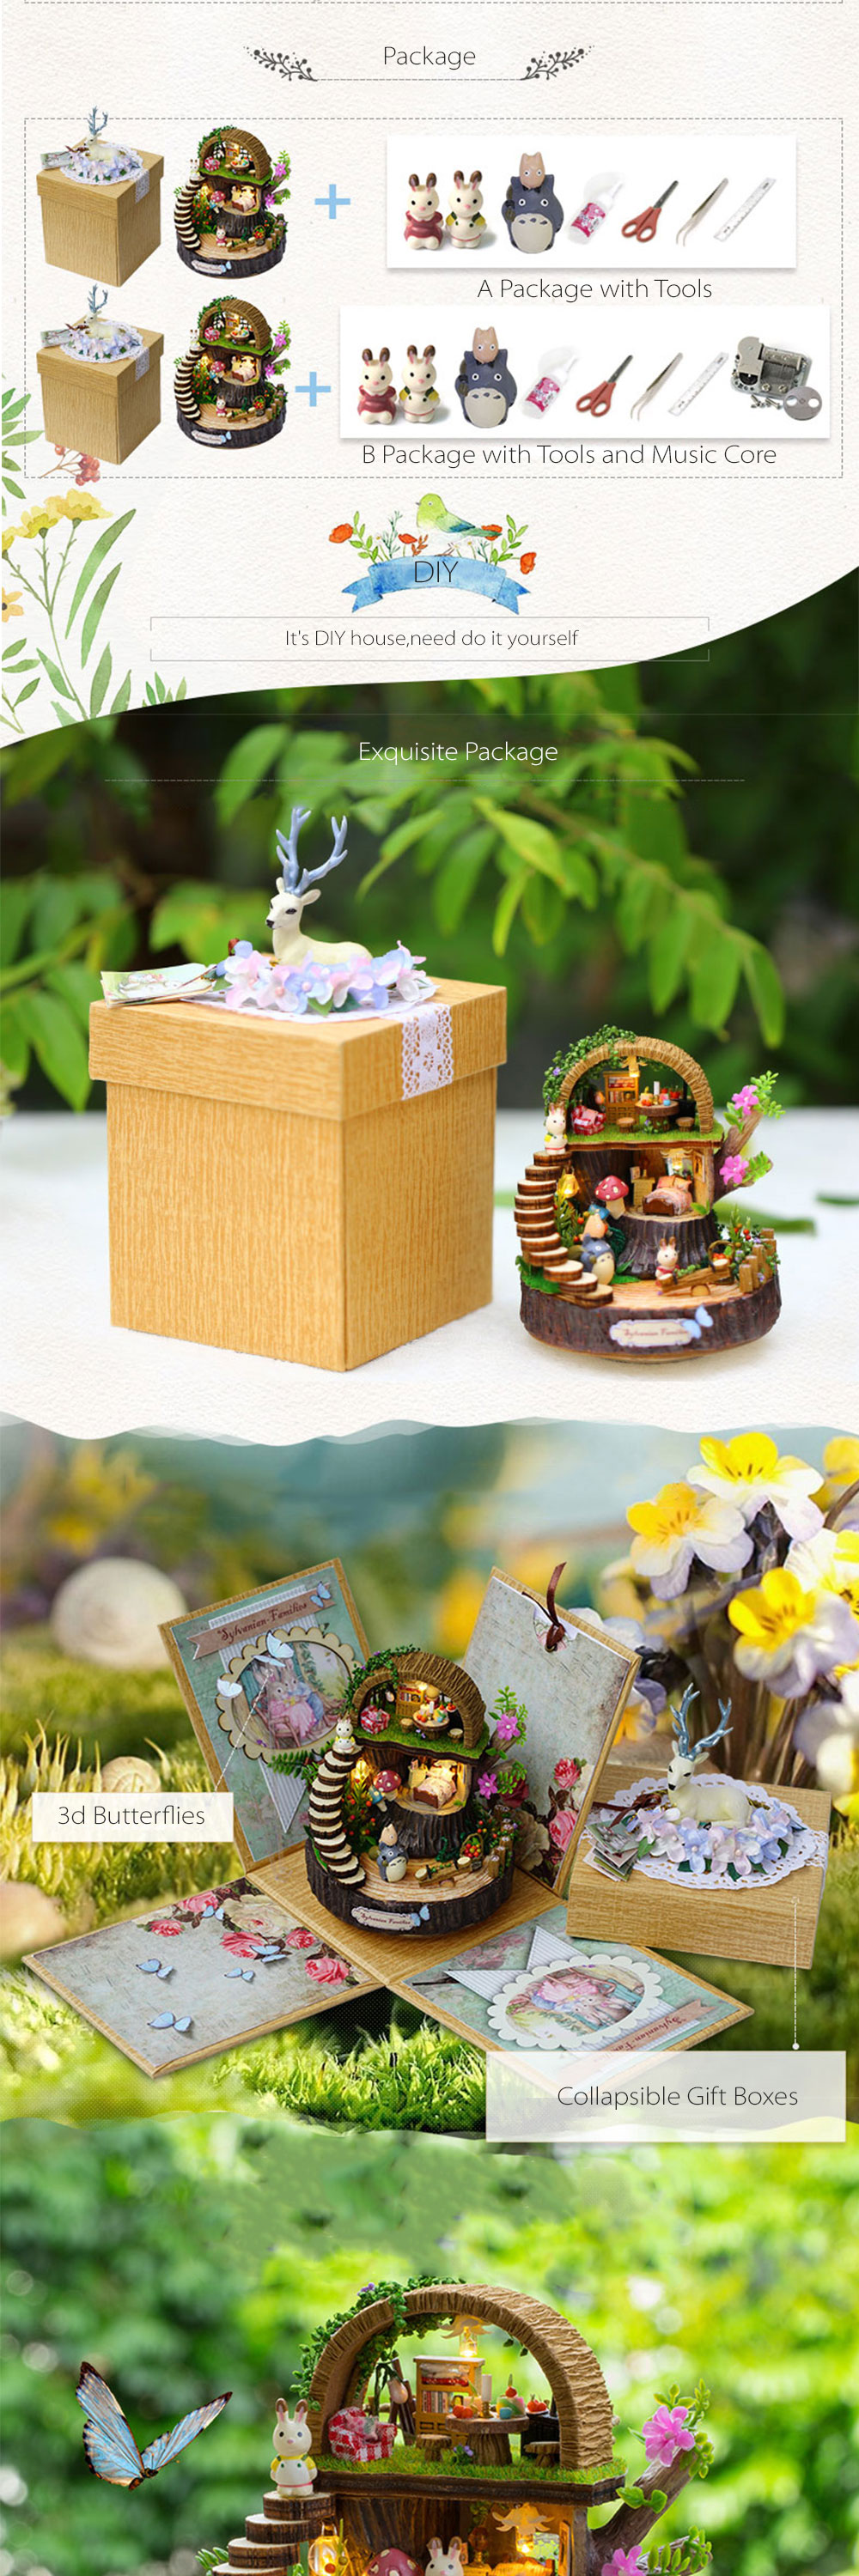 Miniature diy dolls house kit fantasy forest apollobox miniature diy dolls house kit fantasy forest beautiful totoro dollhouse solutioingenieria Choice Image